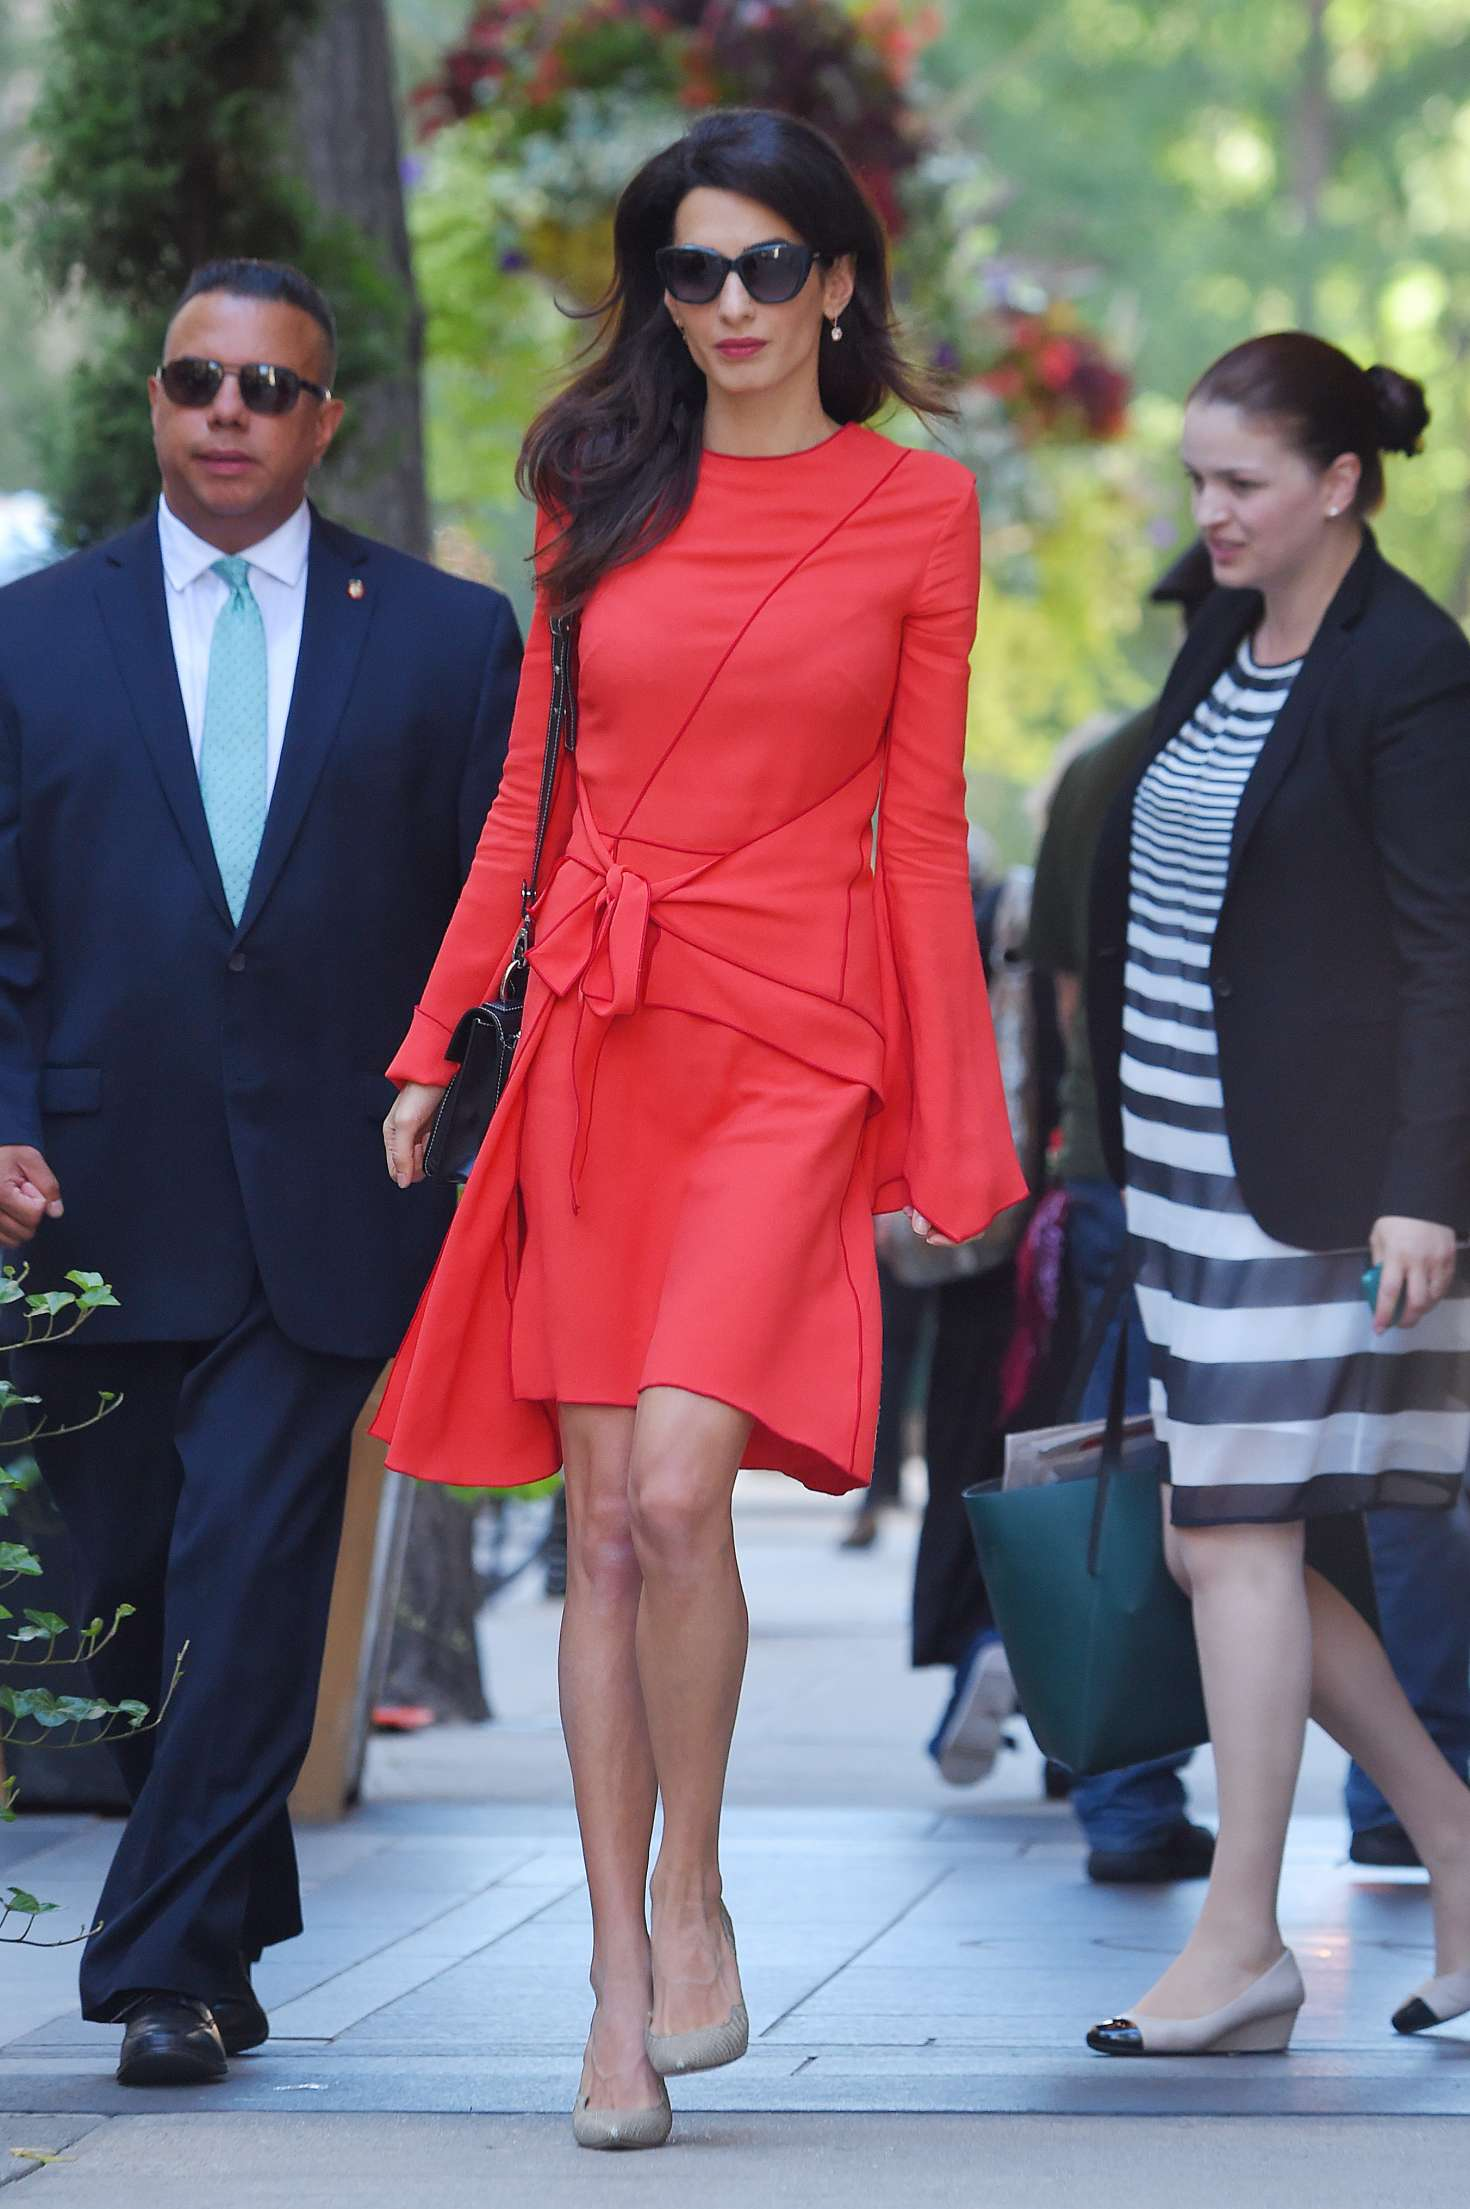 Amal Clooney in Red Dress - Out in NYC